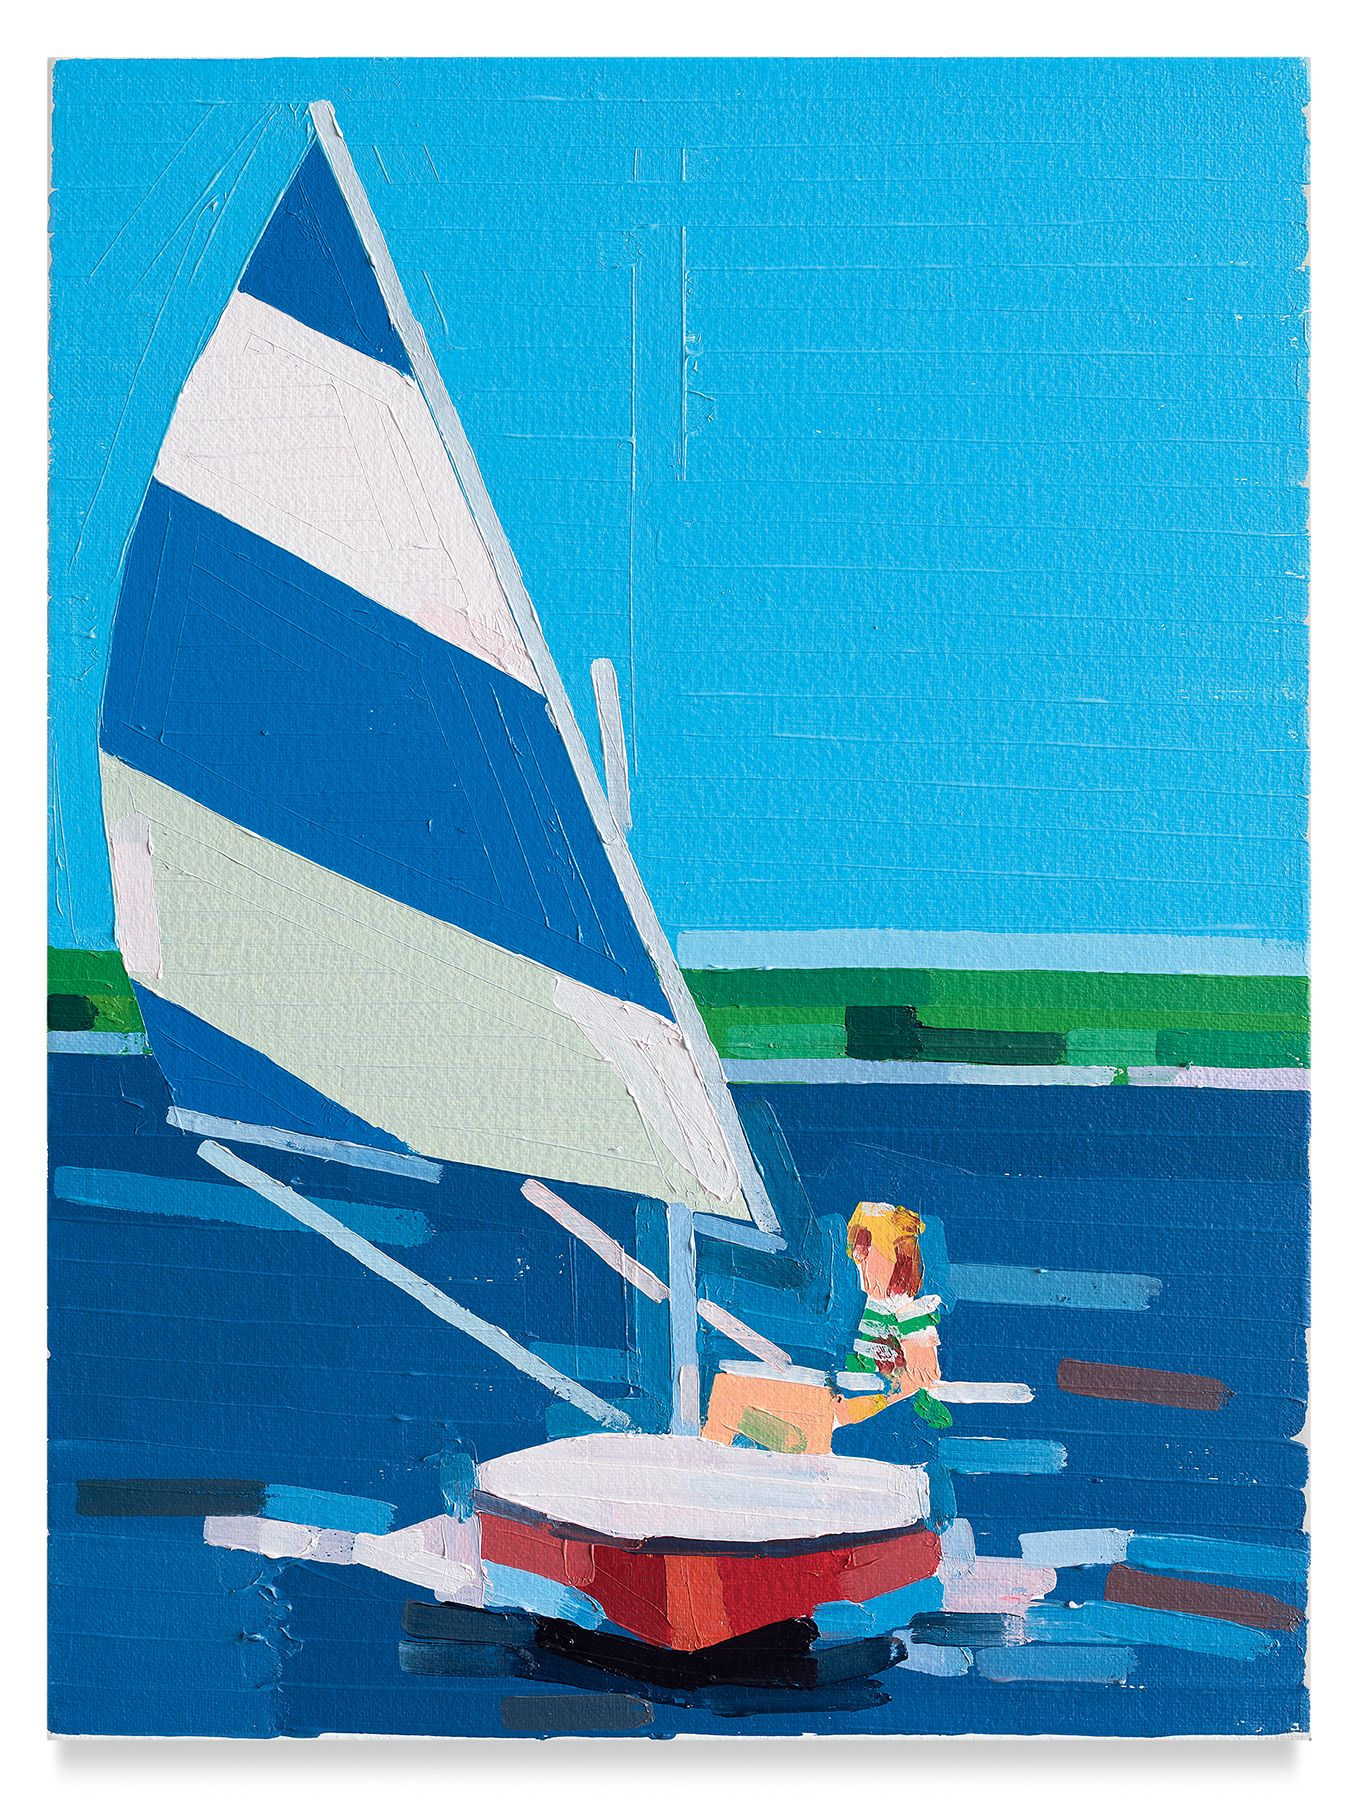 Guy Yanai, Teenager on a Boat, 2019